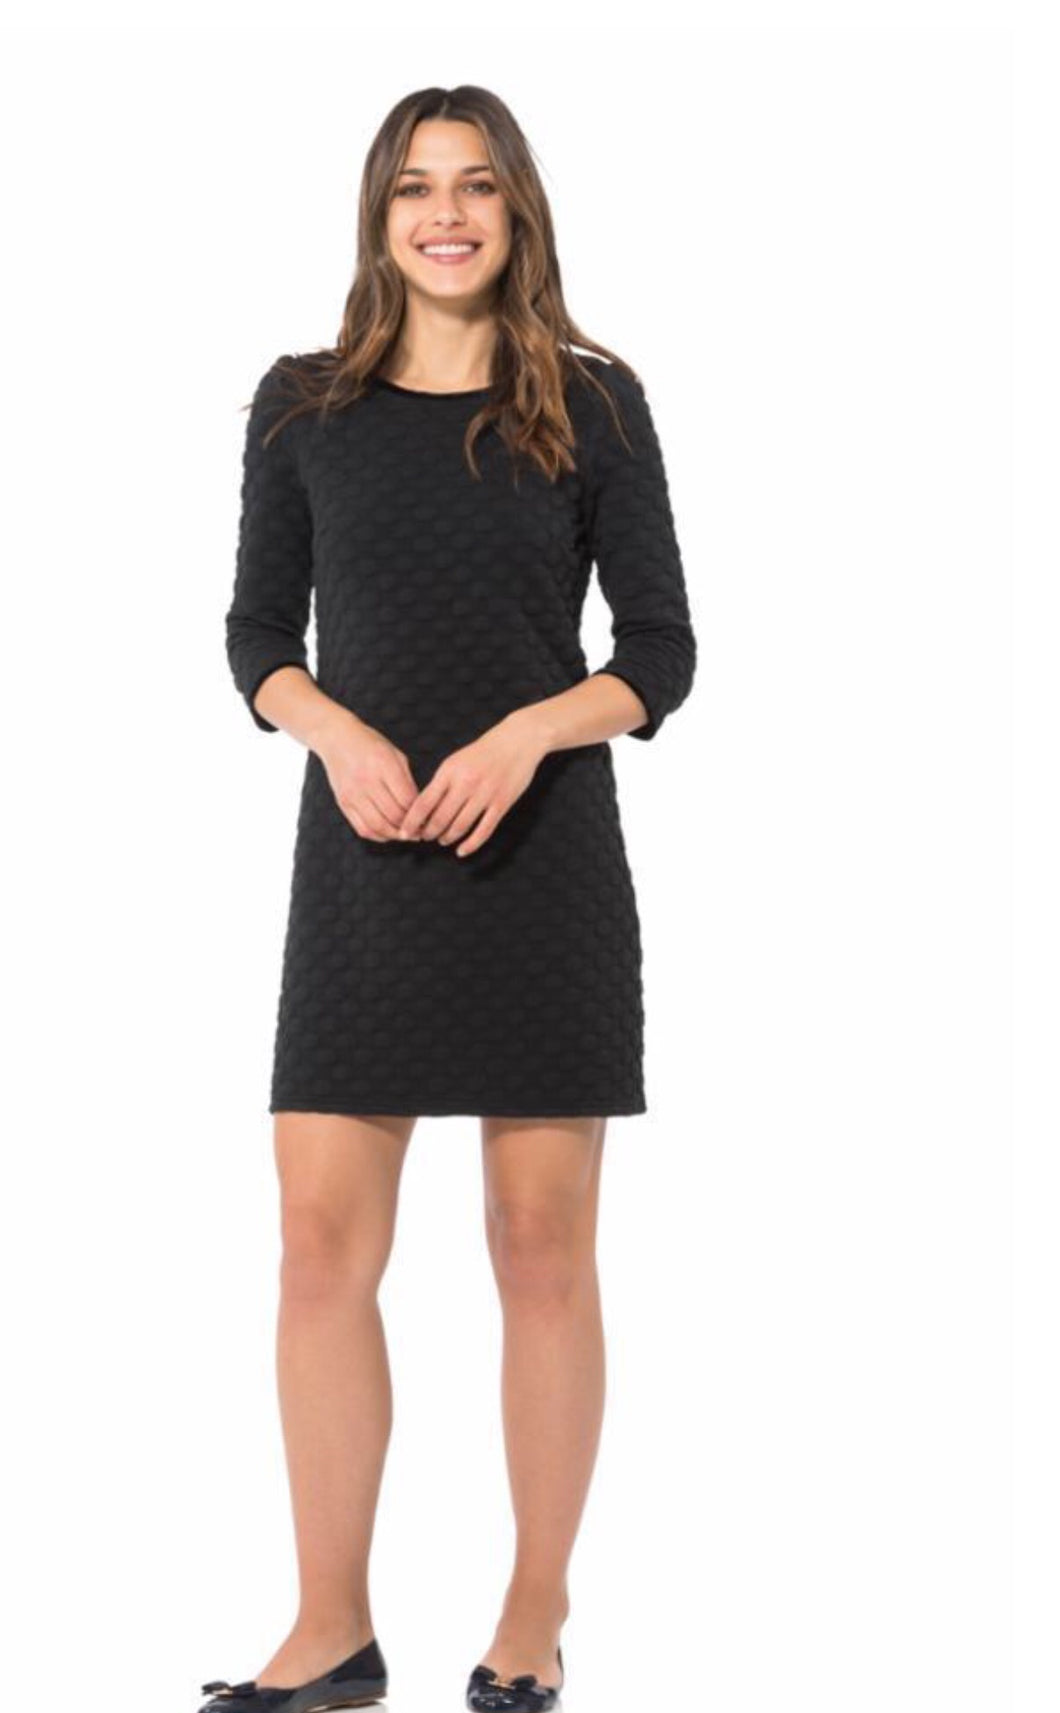 Long Sleeve Dress in Black H1879 by Sail to Sable